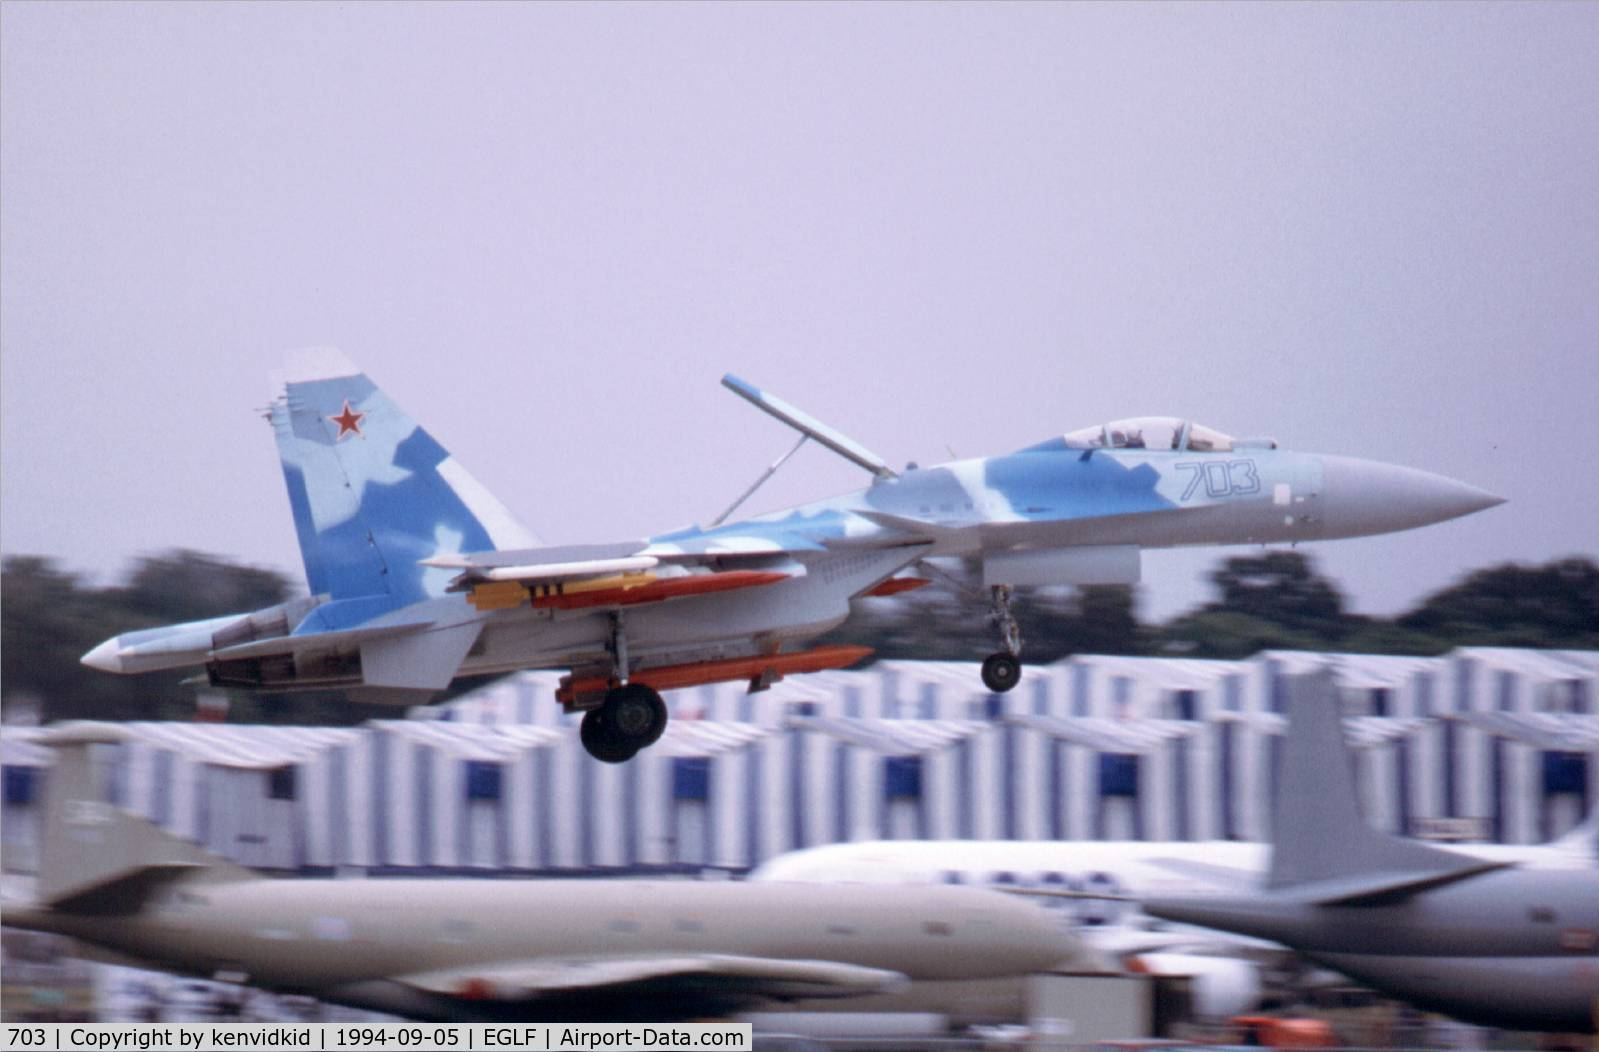 703, 1991 Sukhoi Su-35 C/N Not found 703, At the 1994 Farnborough International Air Show. Scanned from slide.